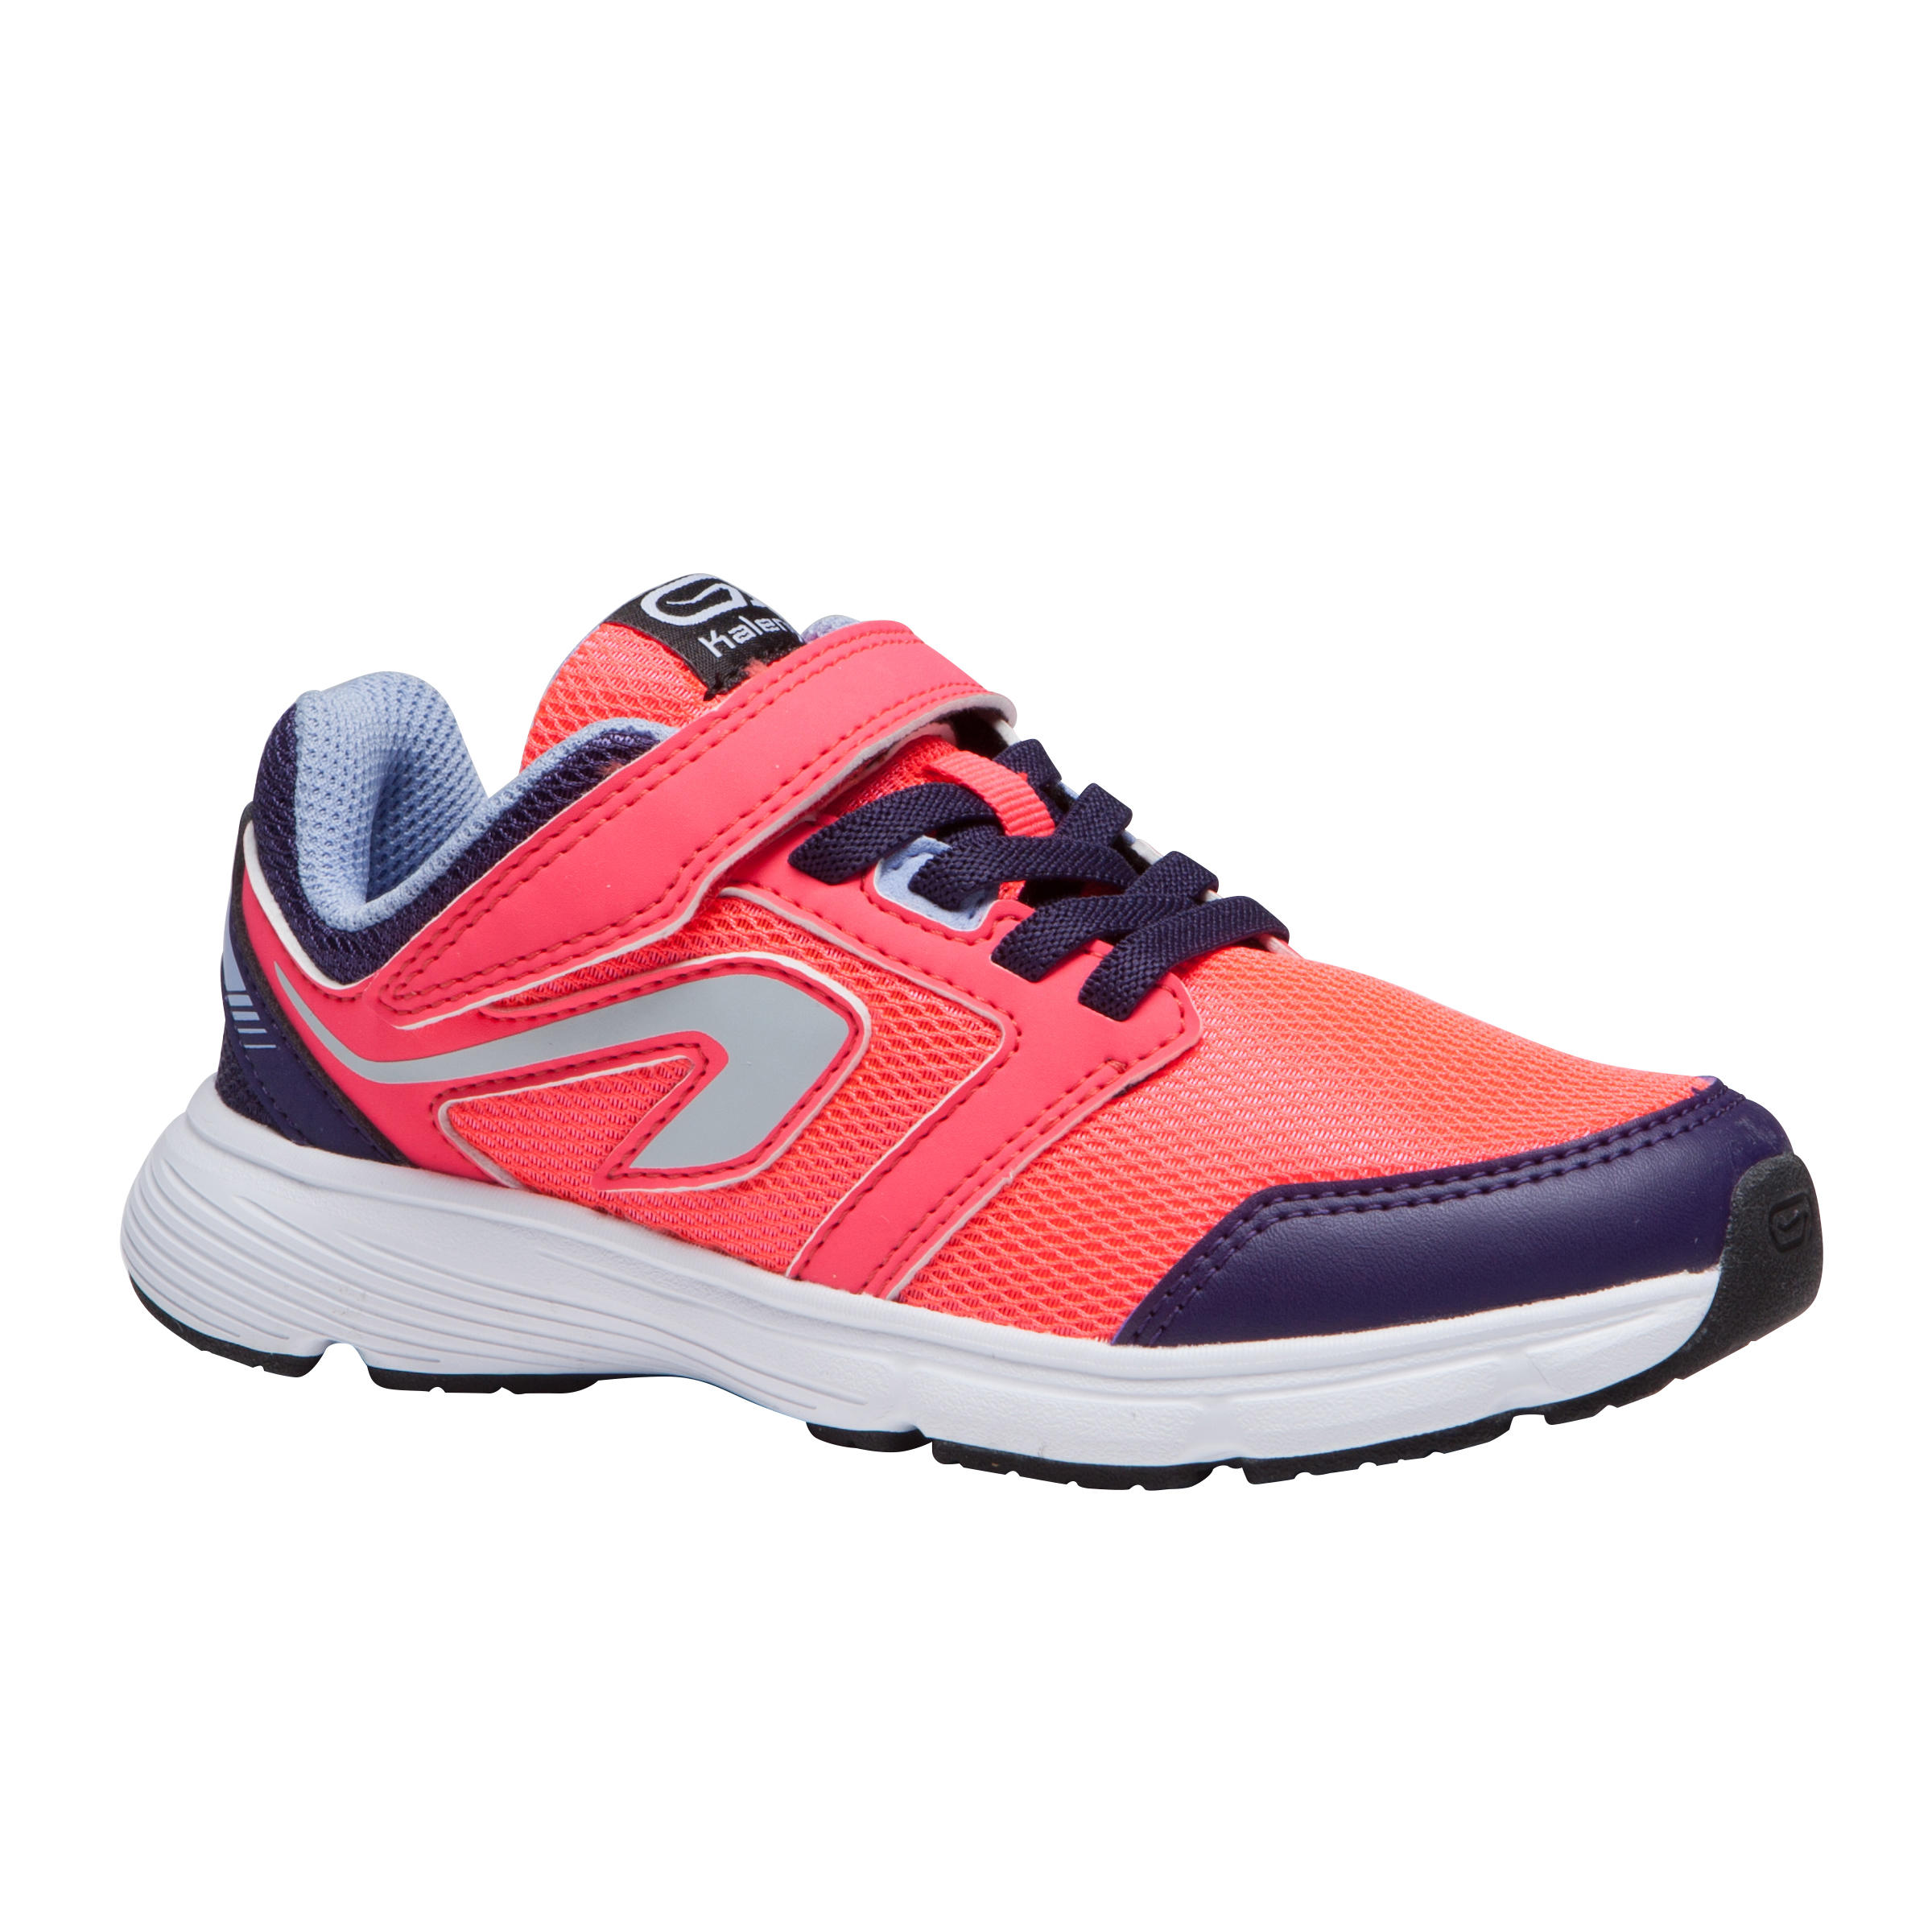 RUNNING SHOES RUN SUPPORT RIP-TAB PINK